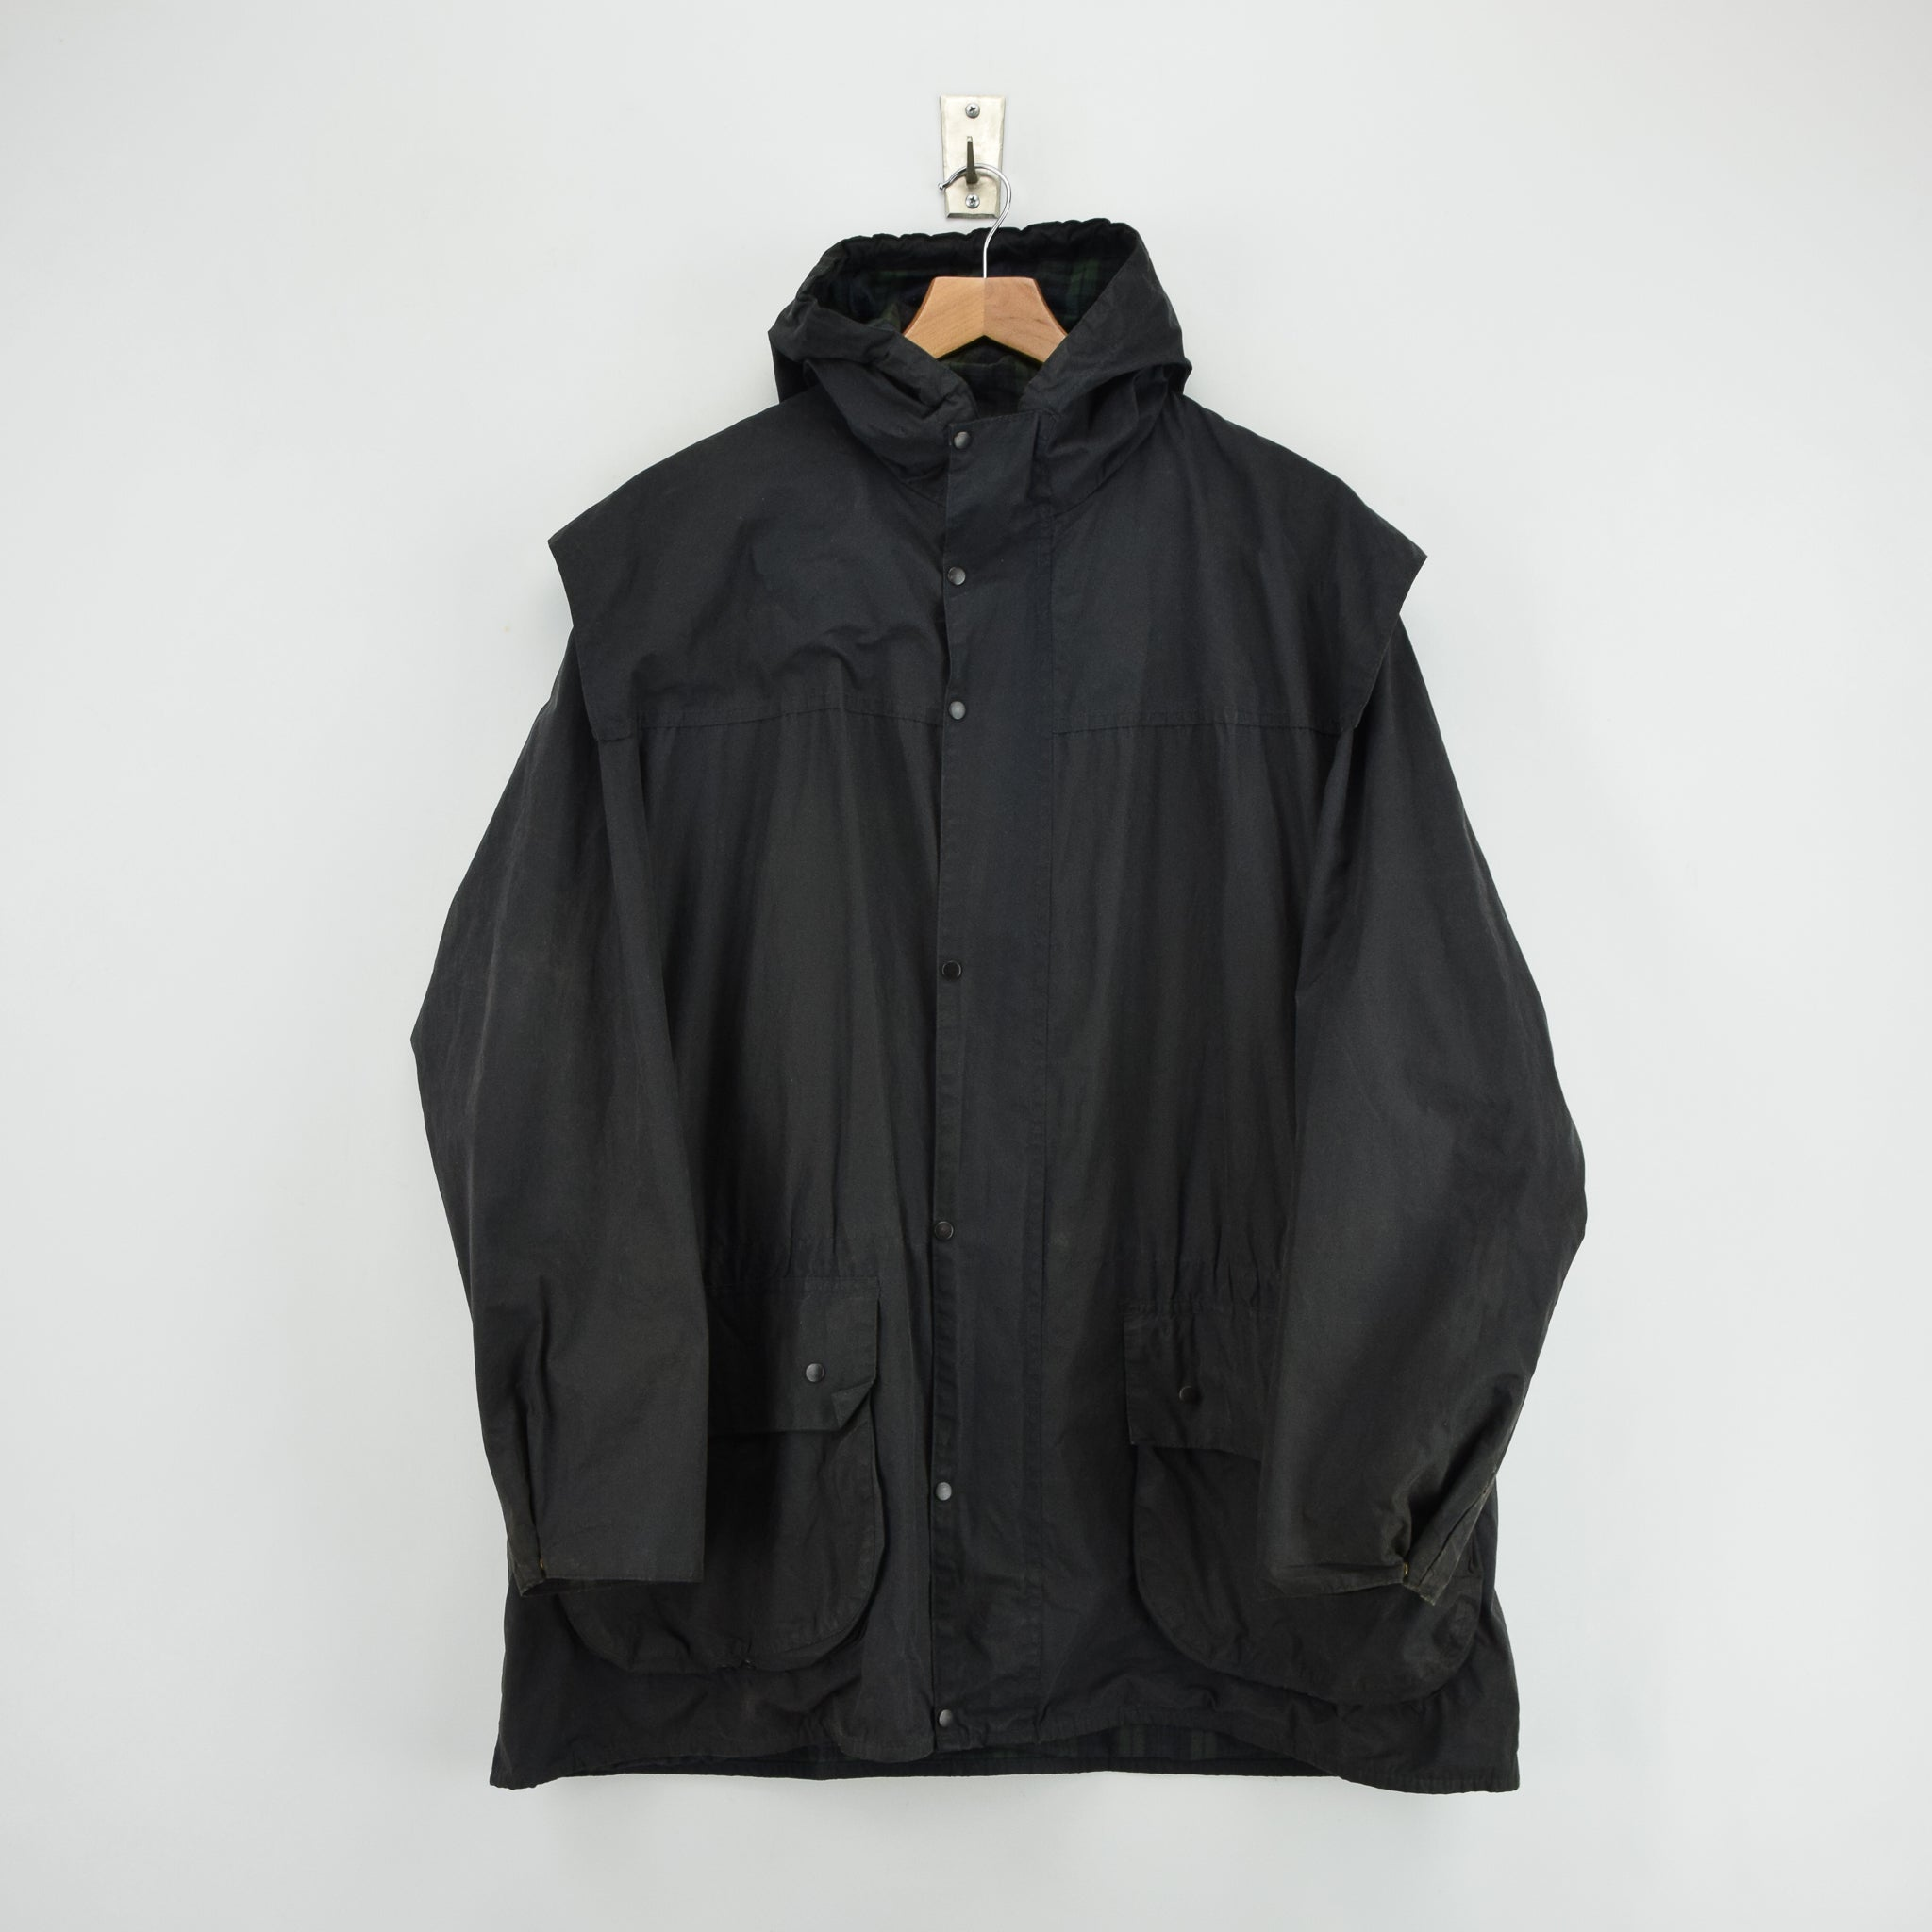 Vintage Barbour A6 Lined Durham Black Hooded Wax Jacket Coat Made In UK L front